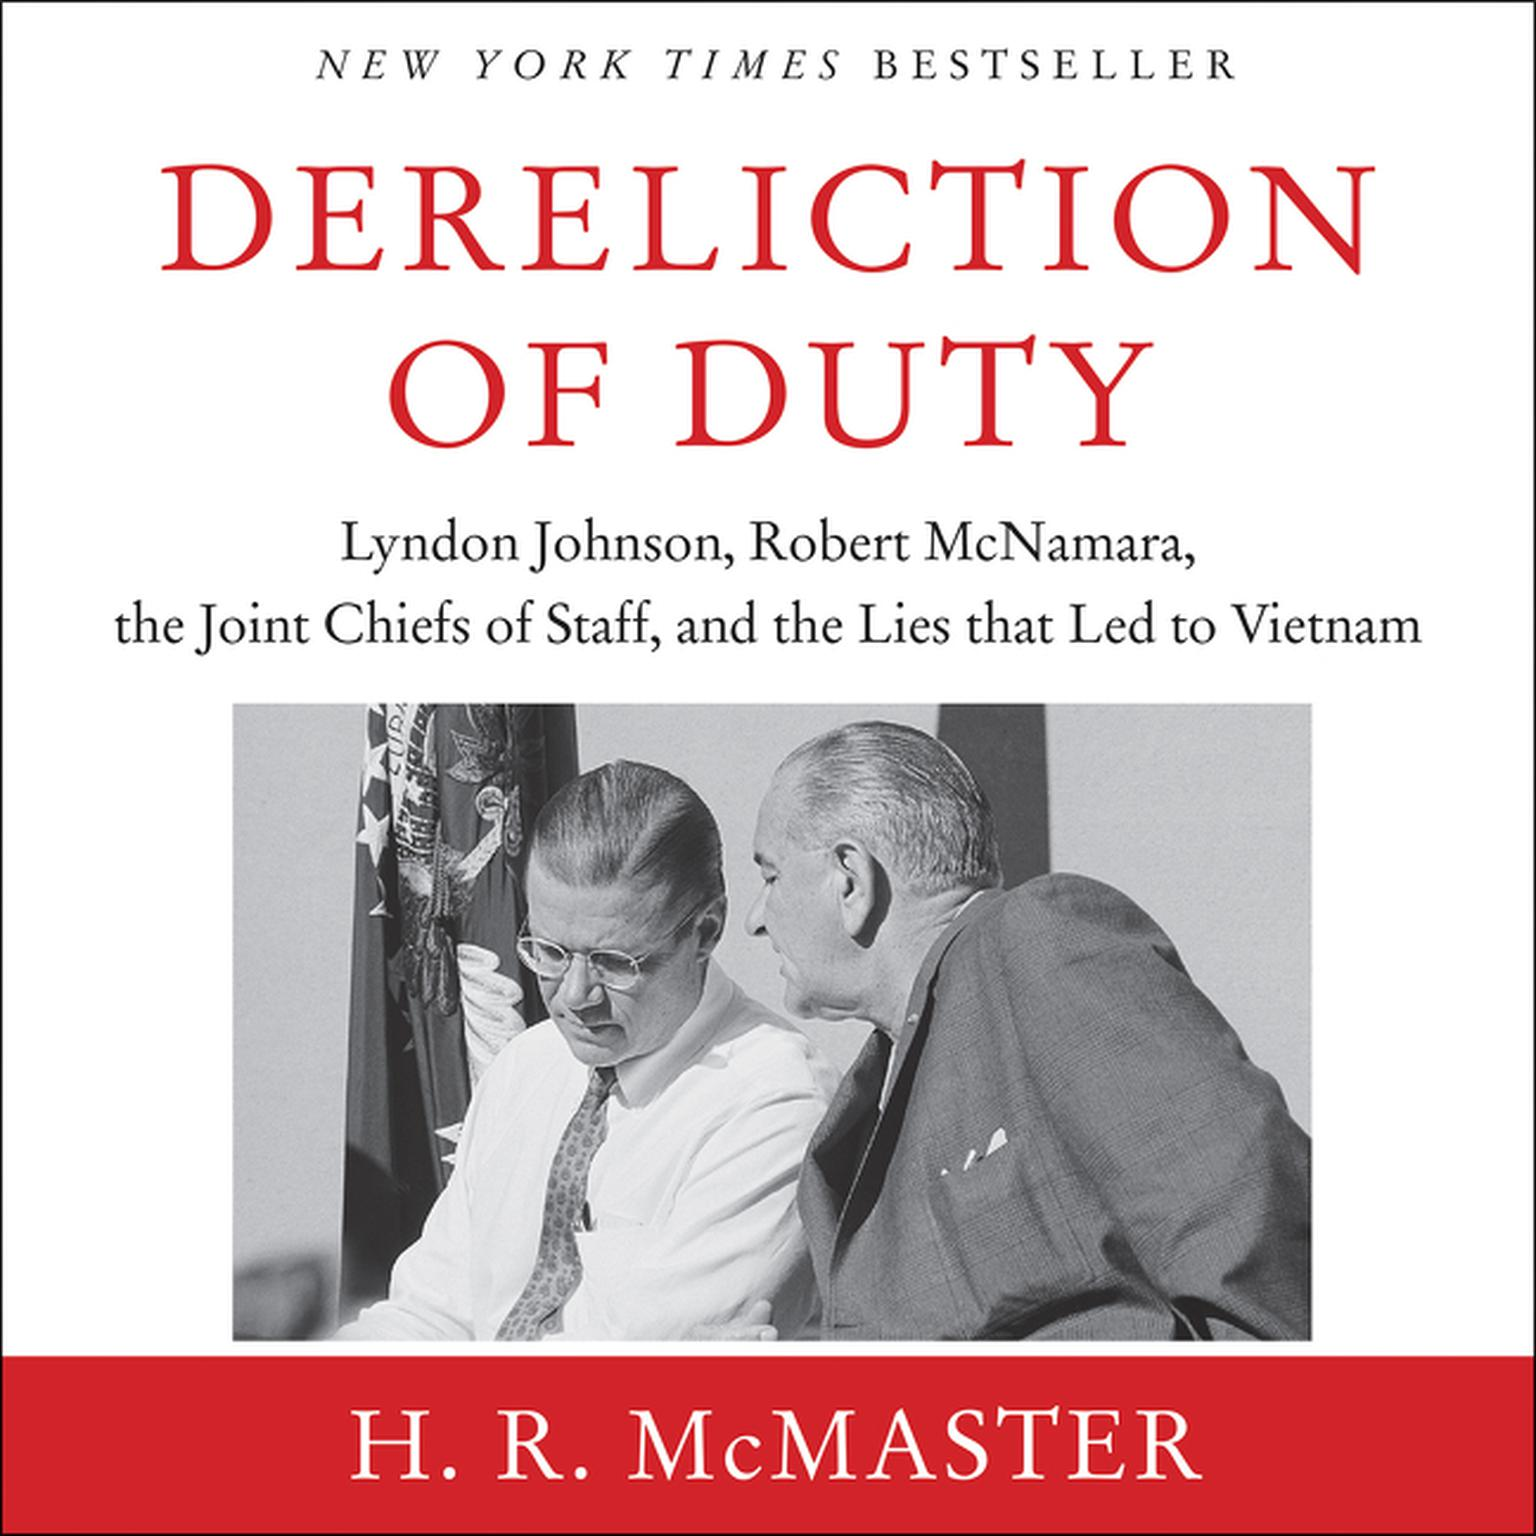 Printable Dereliction of Duty: Johnson, McNamara, the Joint Chiefs of Staff, and the Lies That Led to Vietnam Audiobook Cover Art